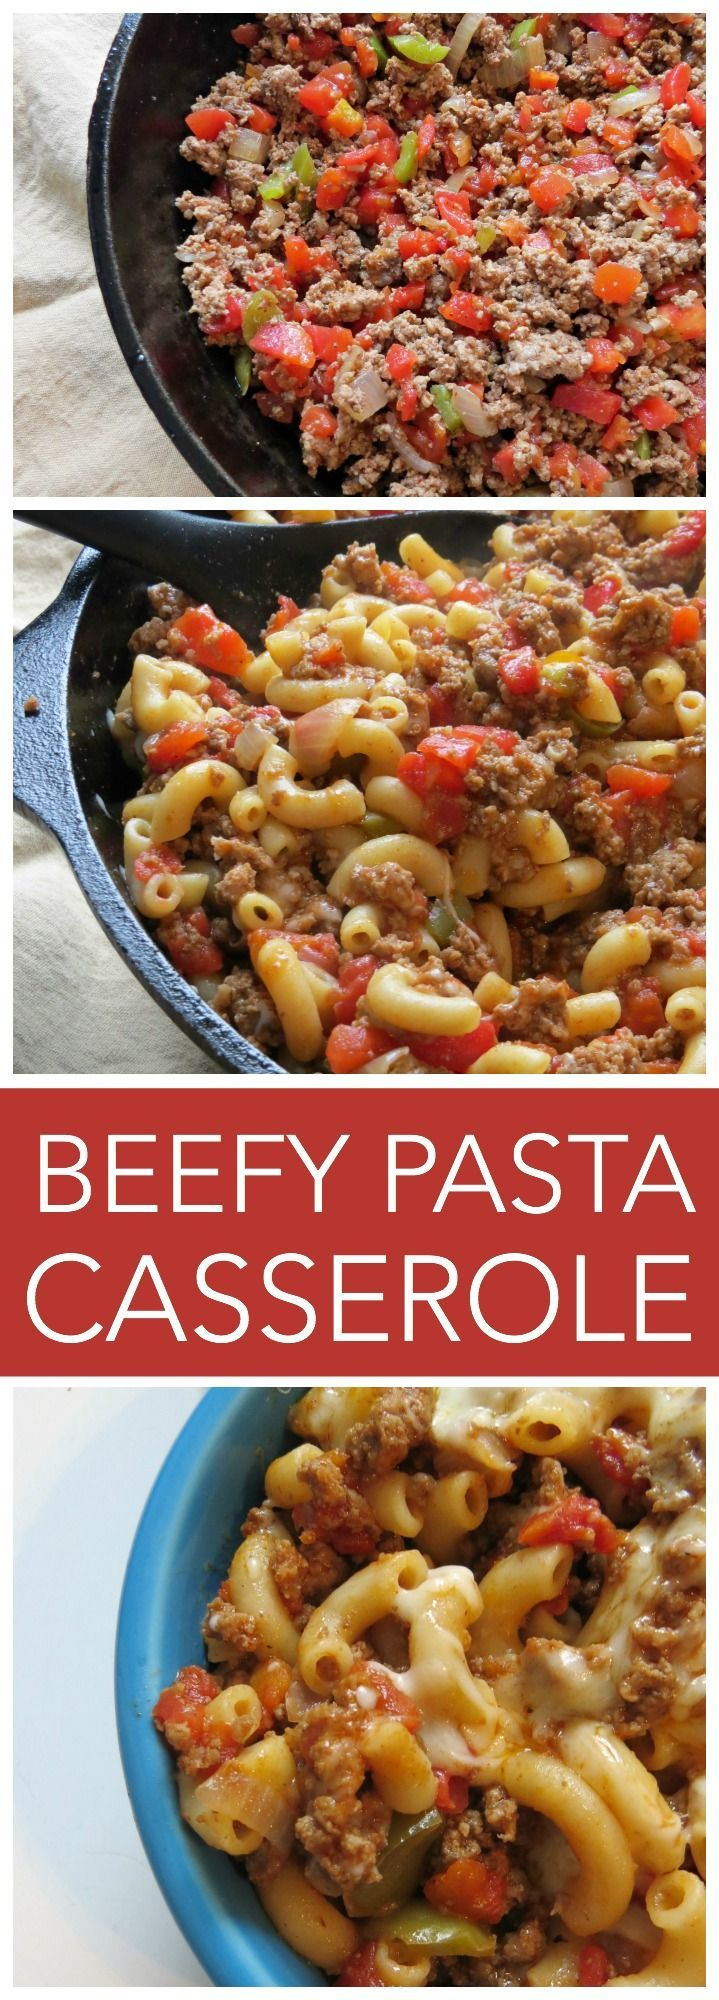 Beefy Pasta Casserole recipe An easy dinner casserole recipe your whole family will LOVE! delicious